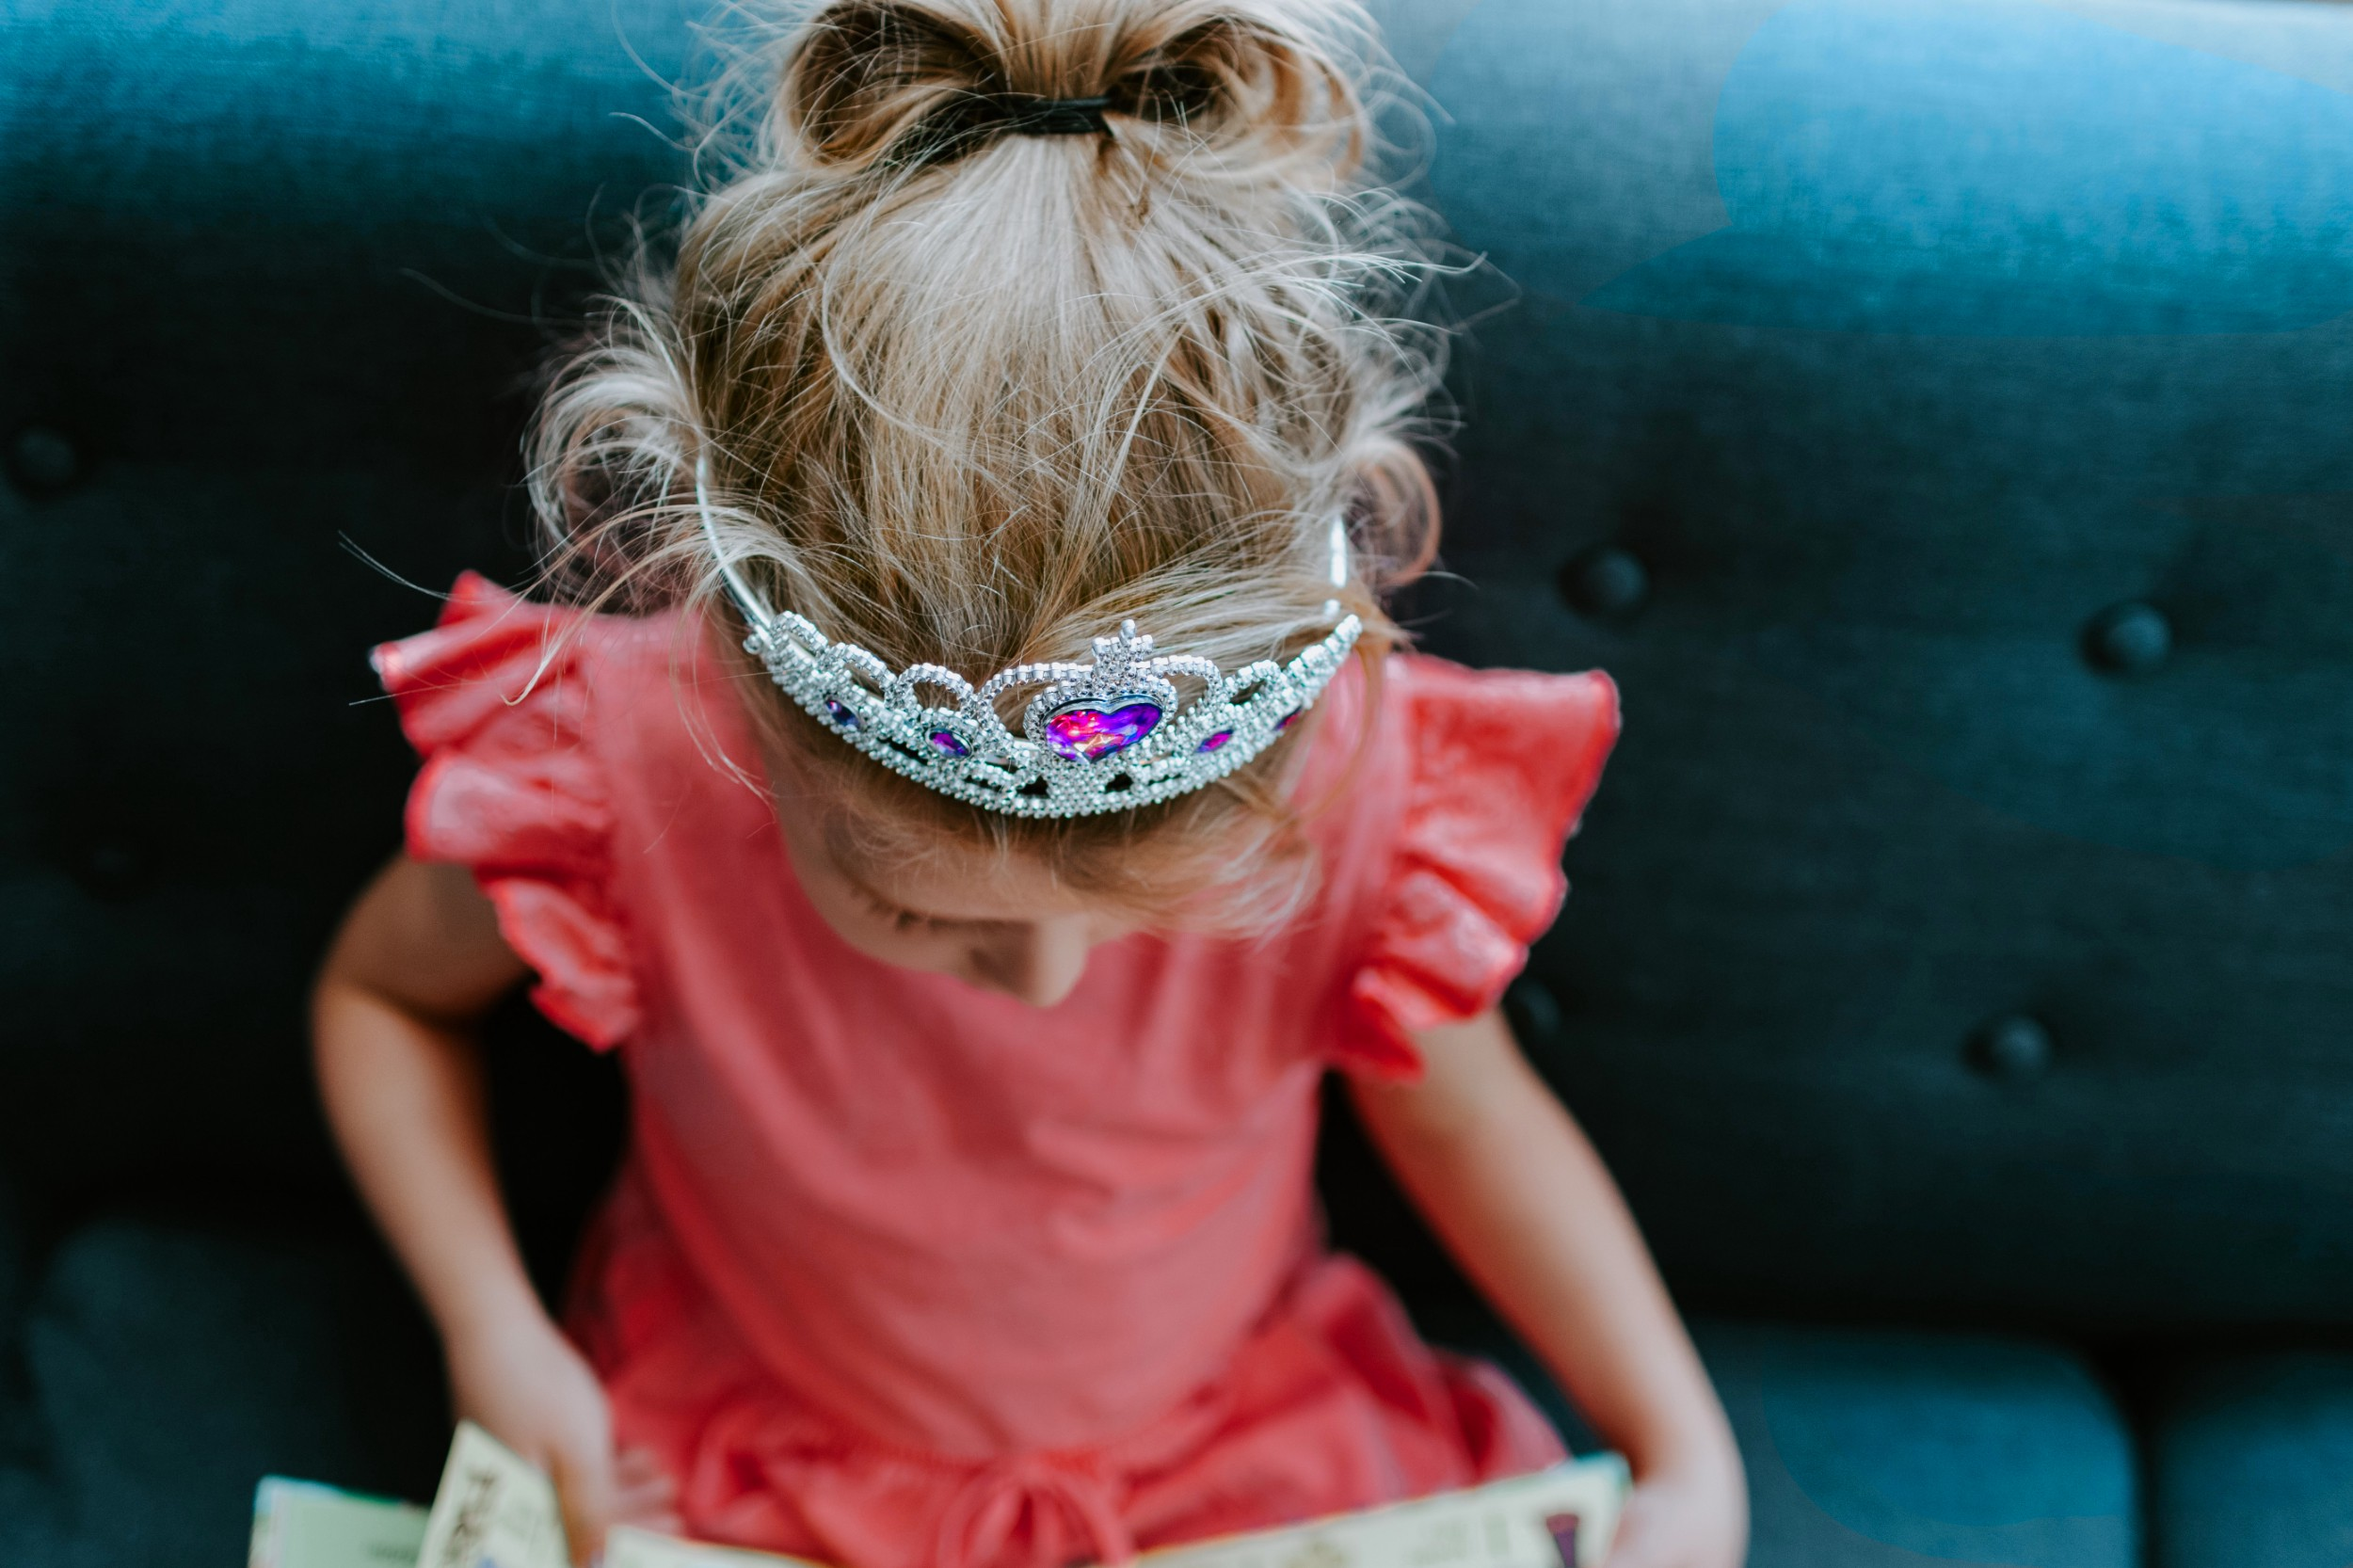 Little girl on a sofa wearing plastic crown while reading.